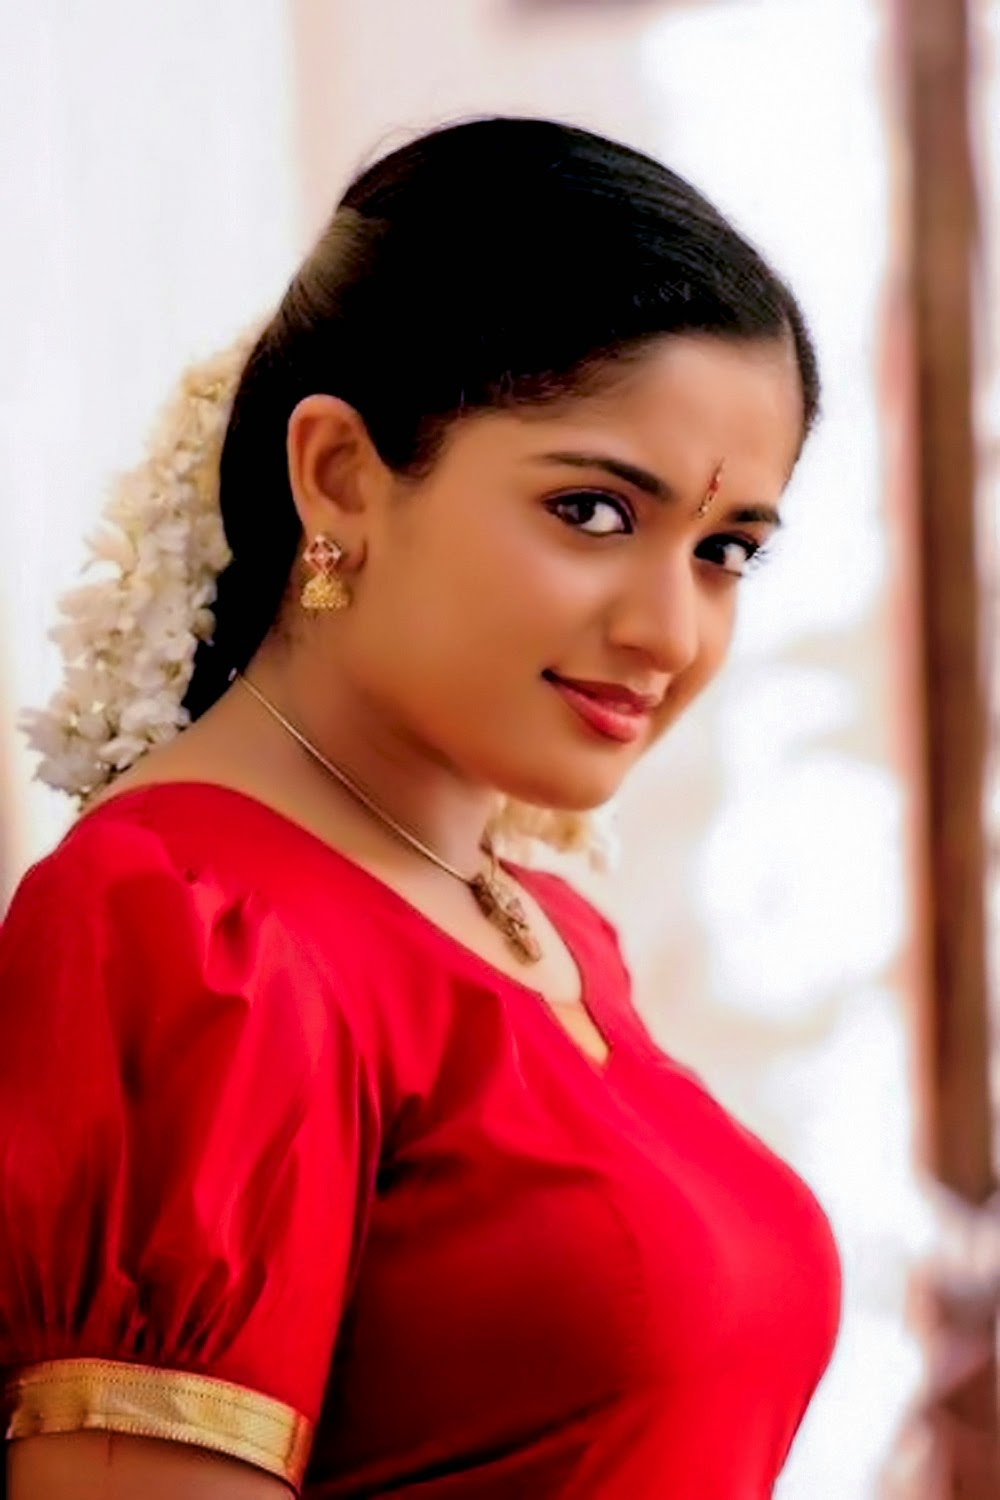 Malayalam actress Kavya Madhavan in red blouse